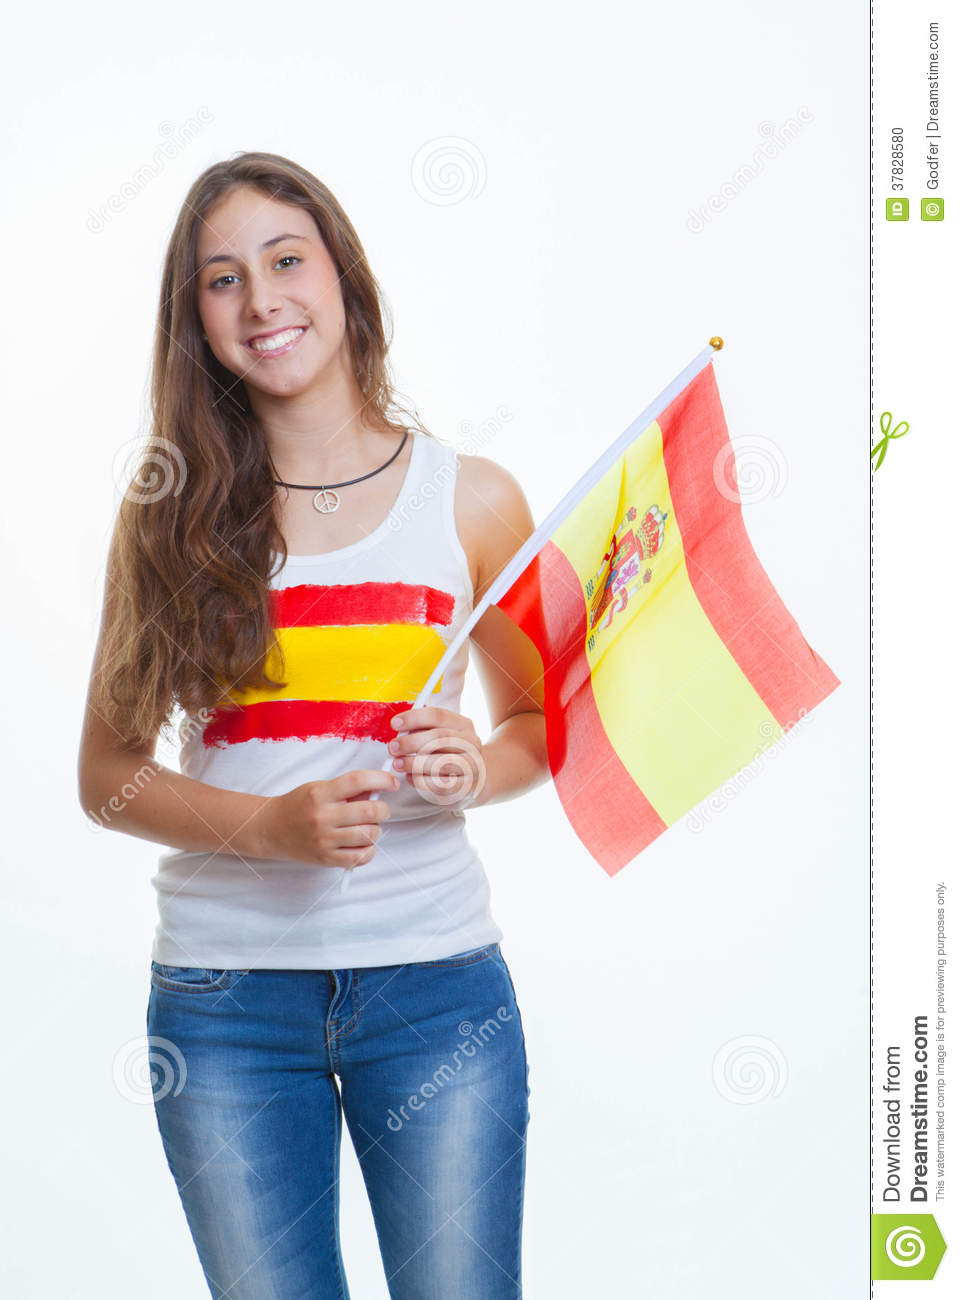 Spanish Flag Person Stock Photo. Image Of Event, United